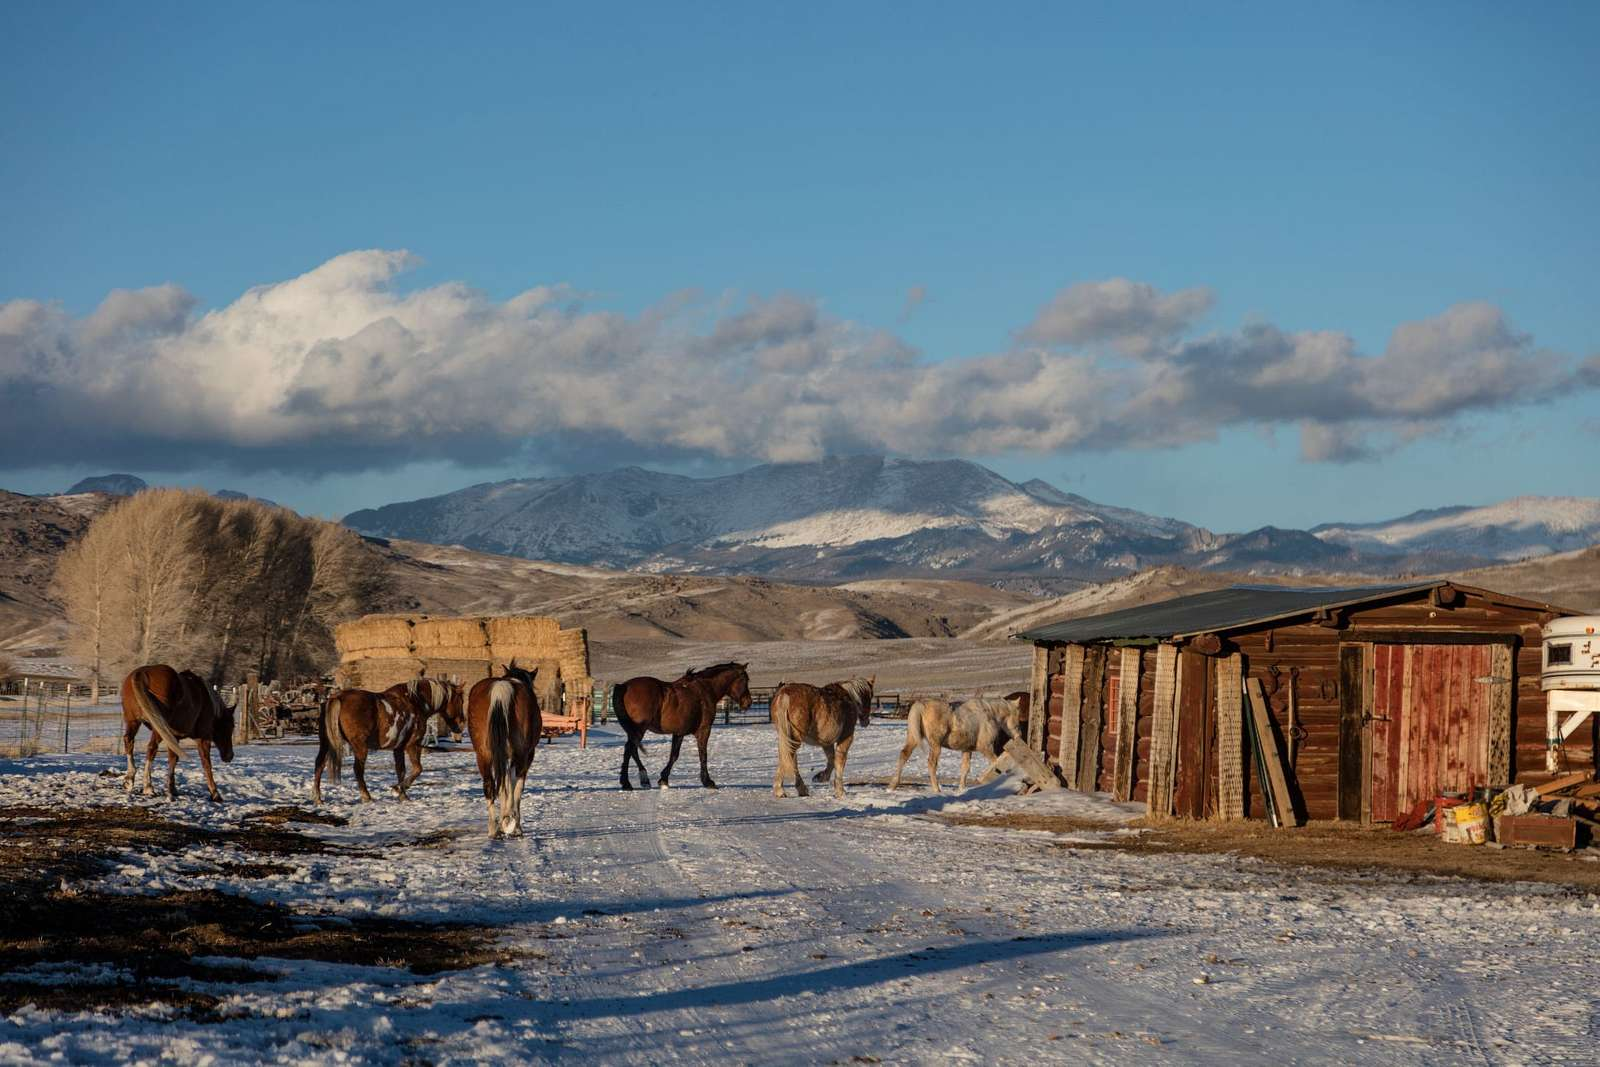 Horses enjoy a last few minutes outside their corral after returning from a romp in the snow at the Midland Ranch, in the shadow of the Wind River Range of the Northern Rockies in remote Sweetwater County, Wyoming